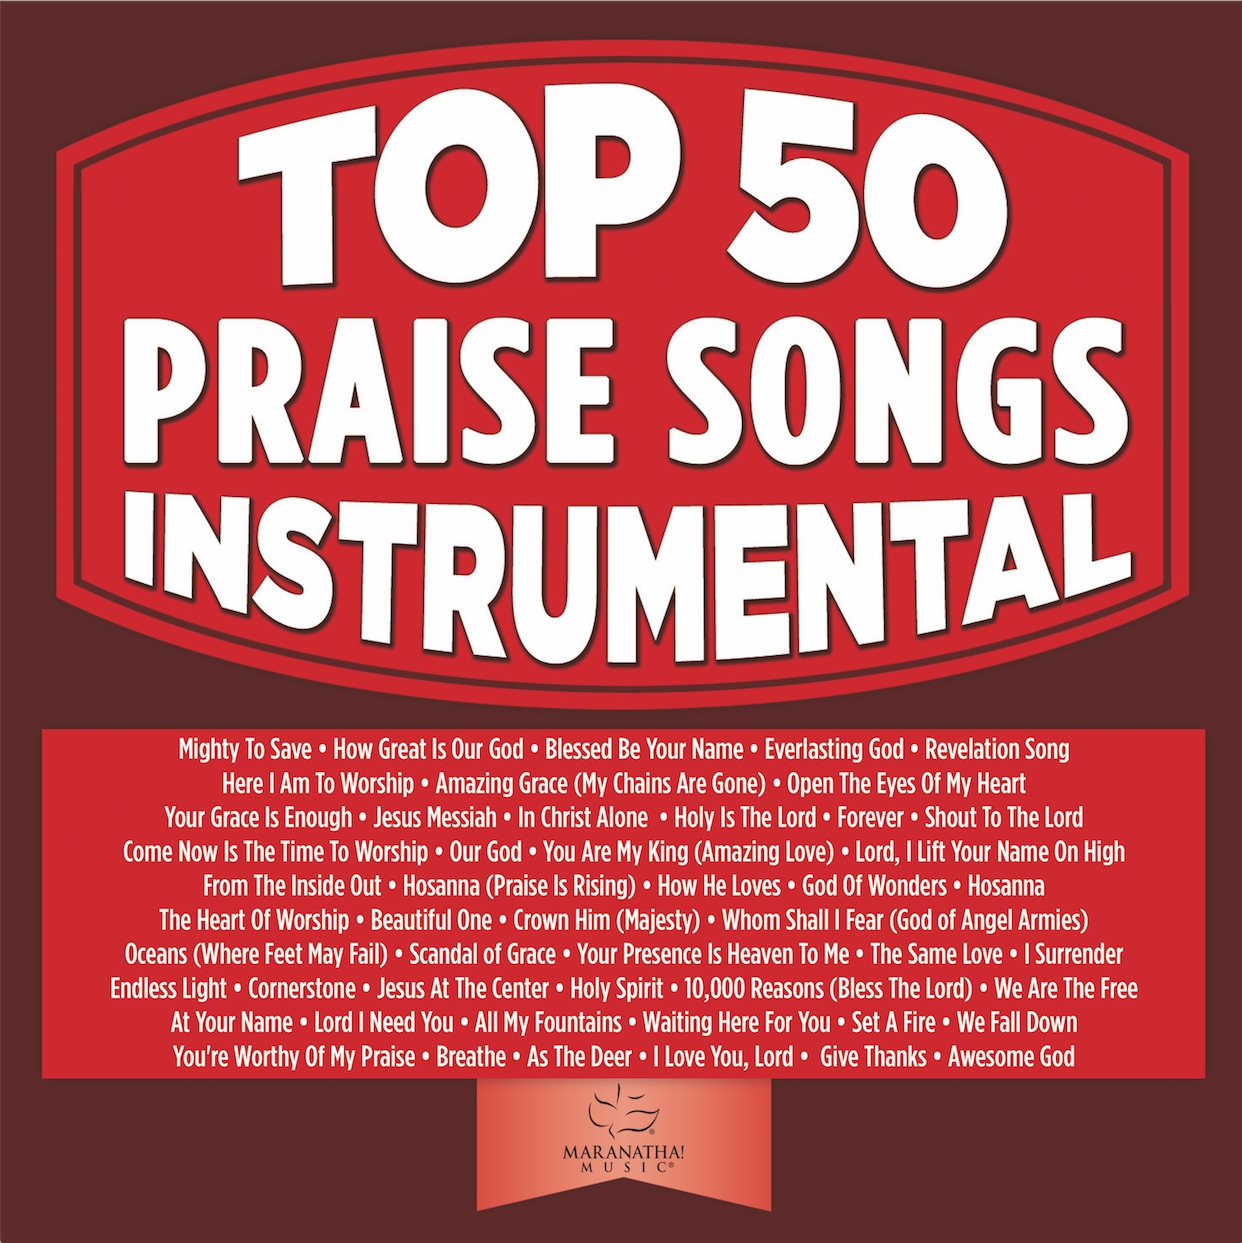 Top 50 Praise Songs Instrumental